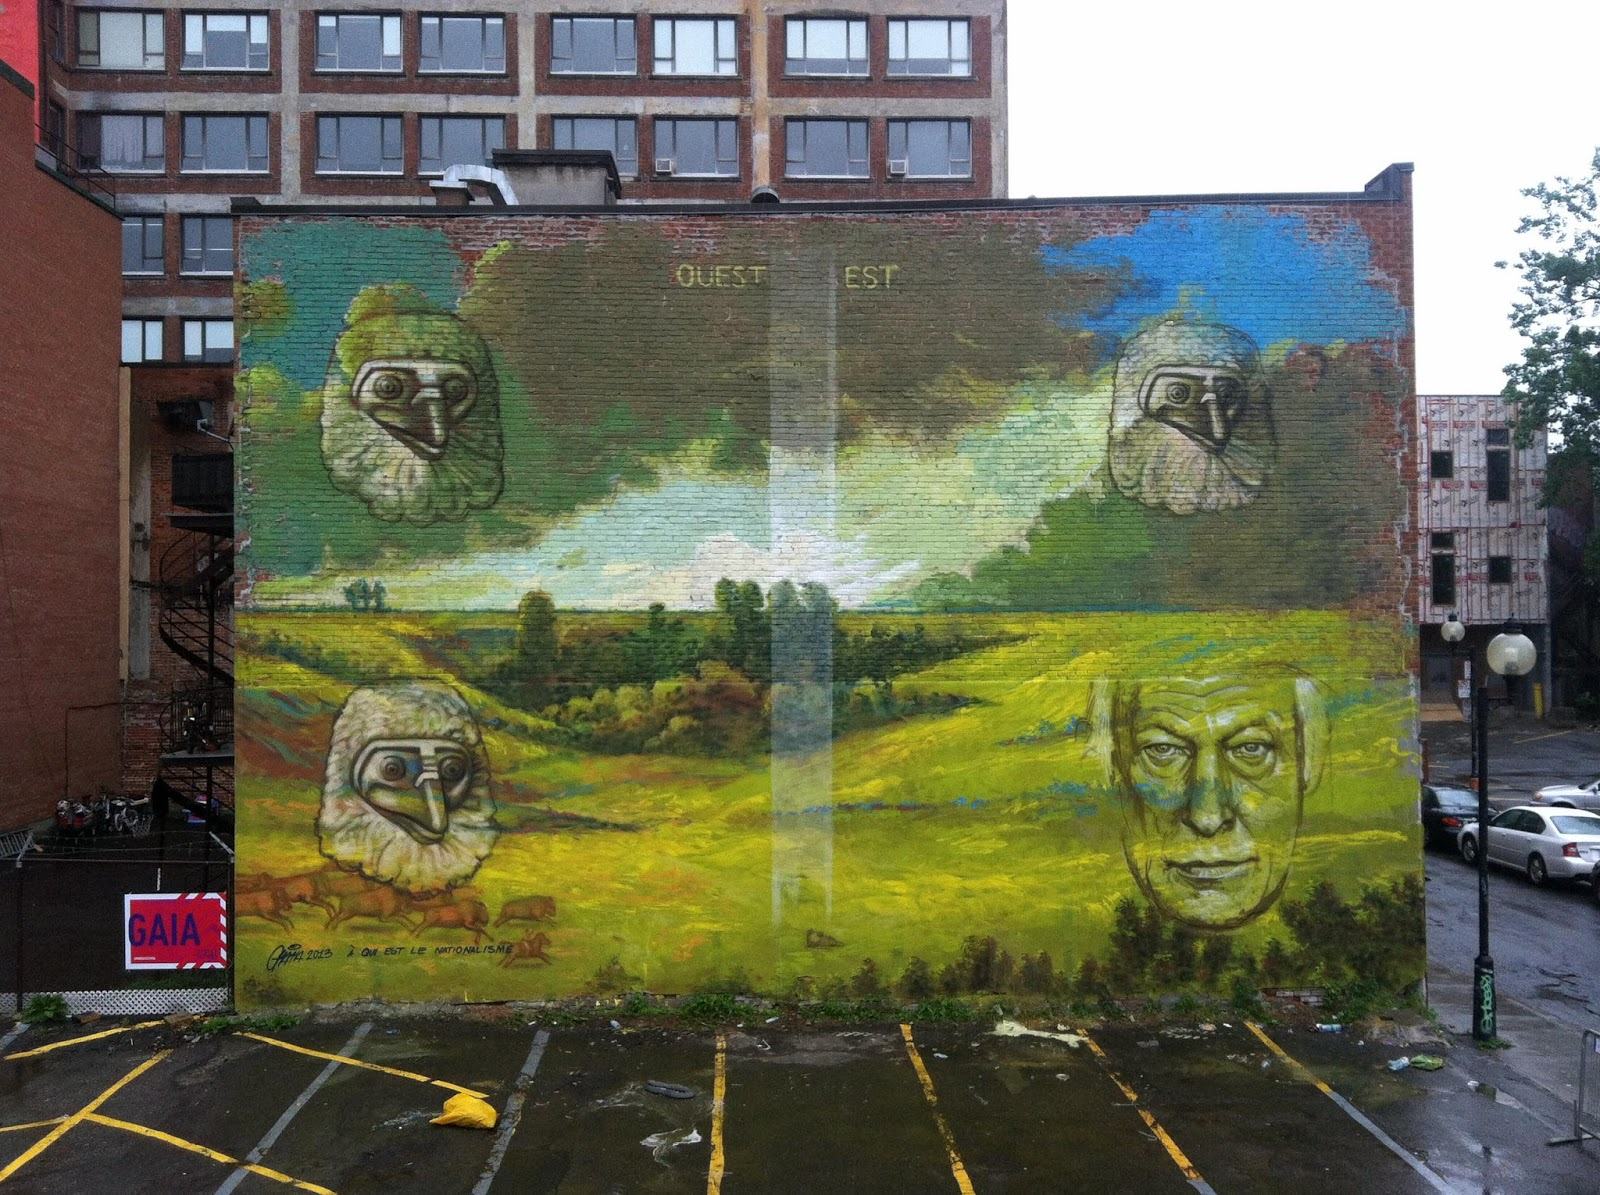 gaia new mural in montreal canada streetartnews streetartnews gaia new mural in montreal canada